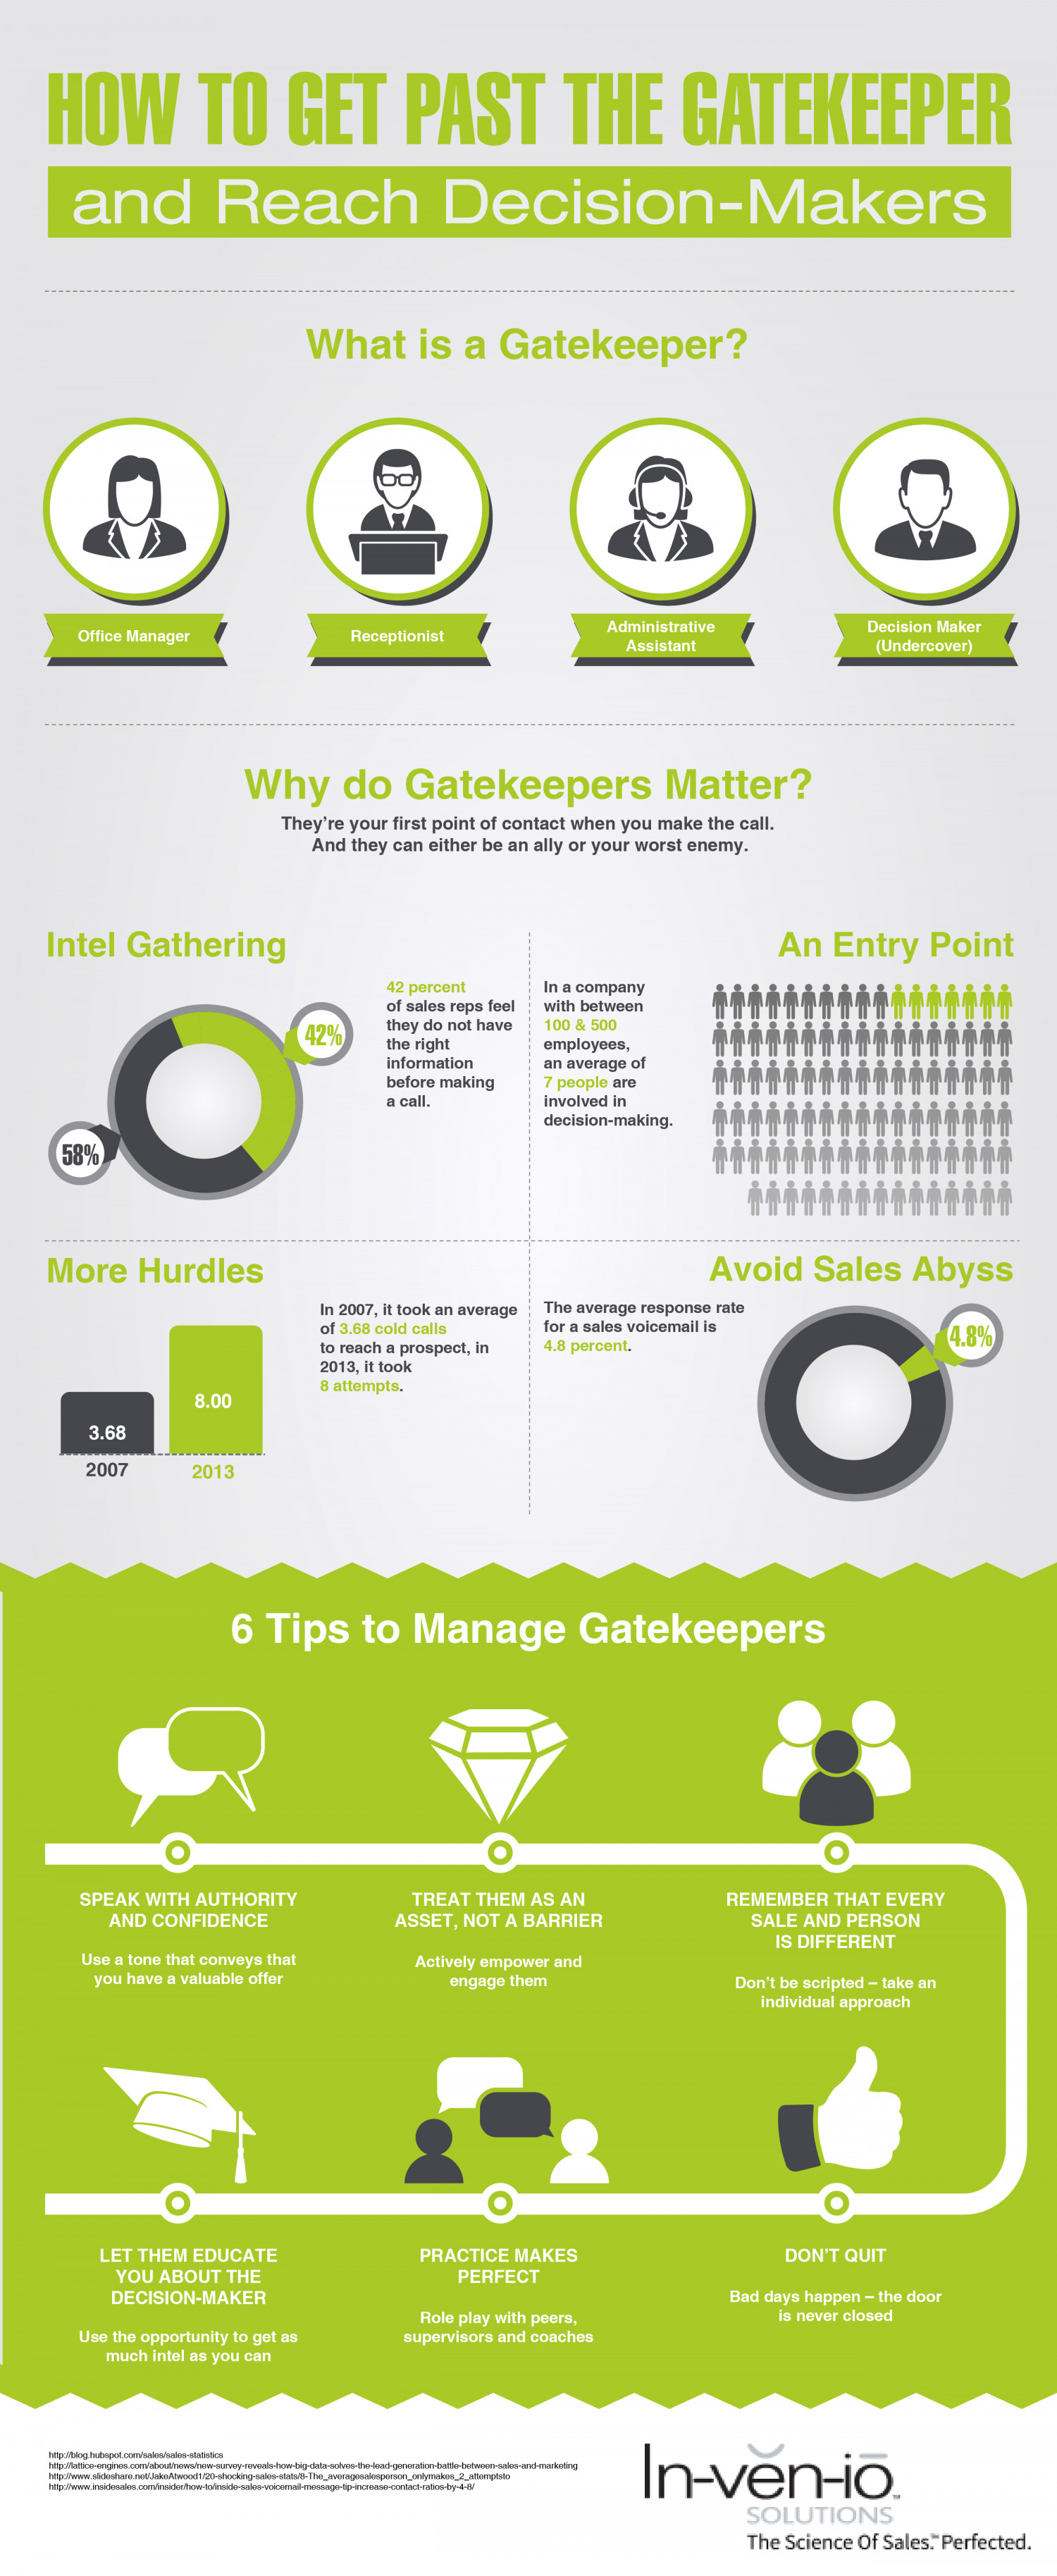 How to Get Past the Gatekeeper and Reach Decision Makers Infographic